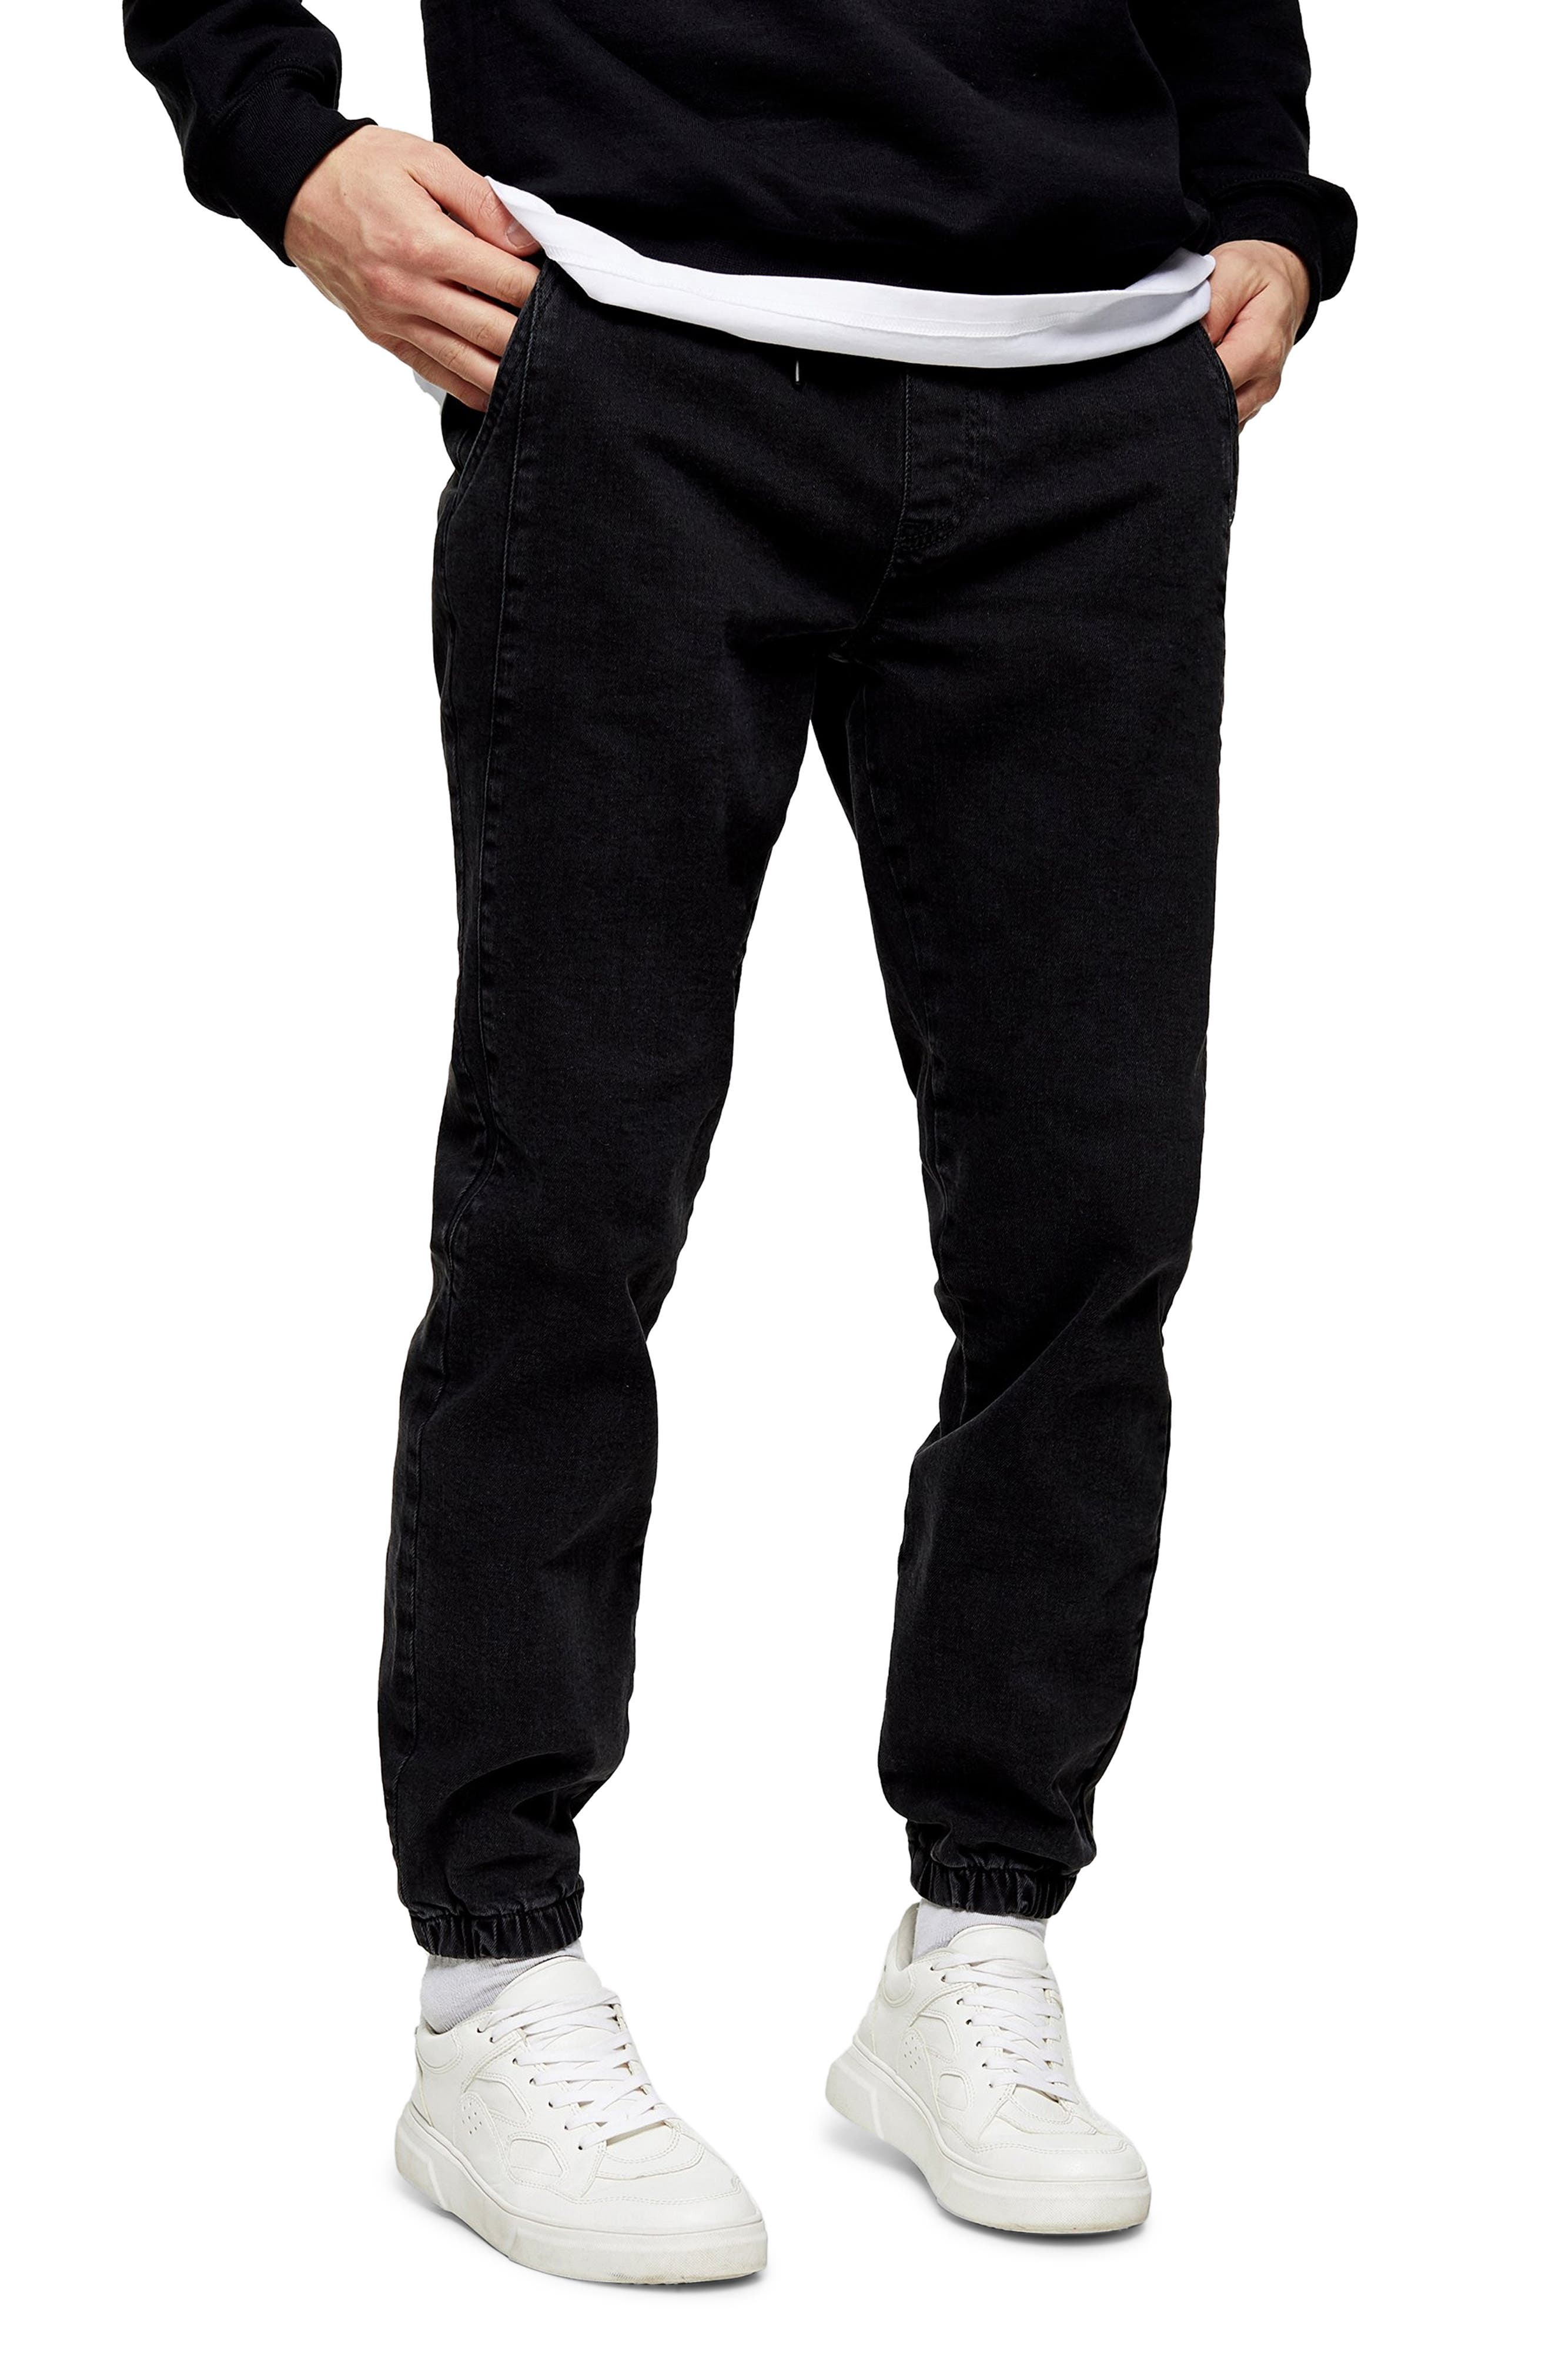 Light fading softens the inky blackness of sporty stretch-denim joggers cut with a close fit that looks modern and stays comfortable. Style Name: Topman Denim Joggers. Style Number: 6130986. Available in stores.